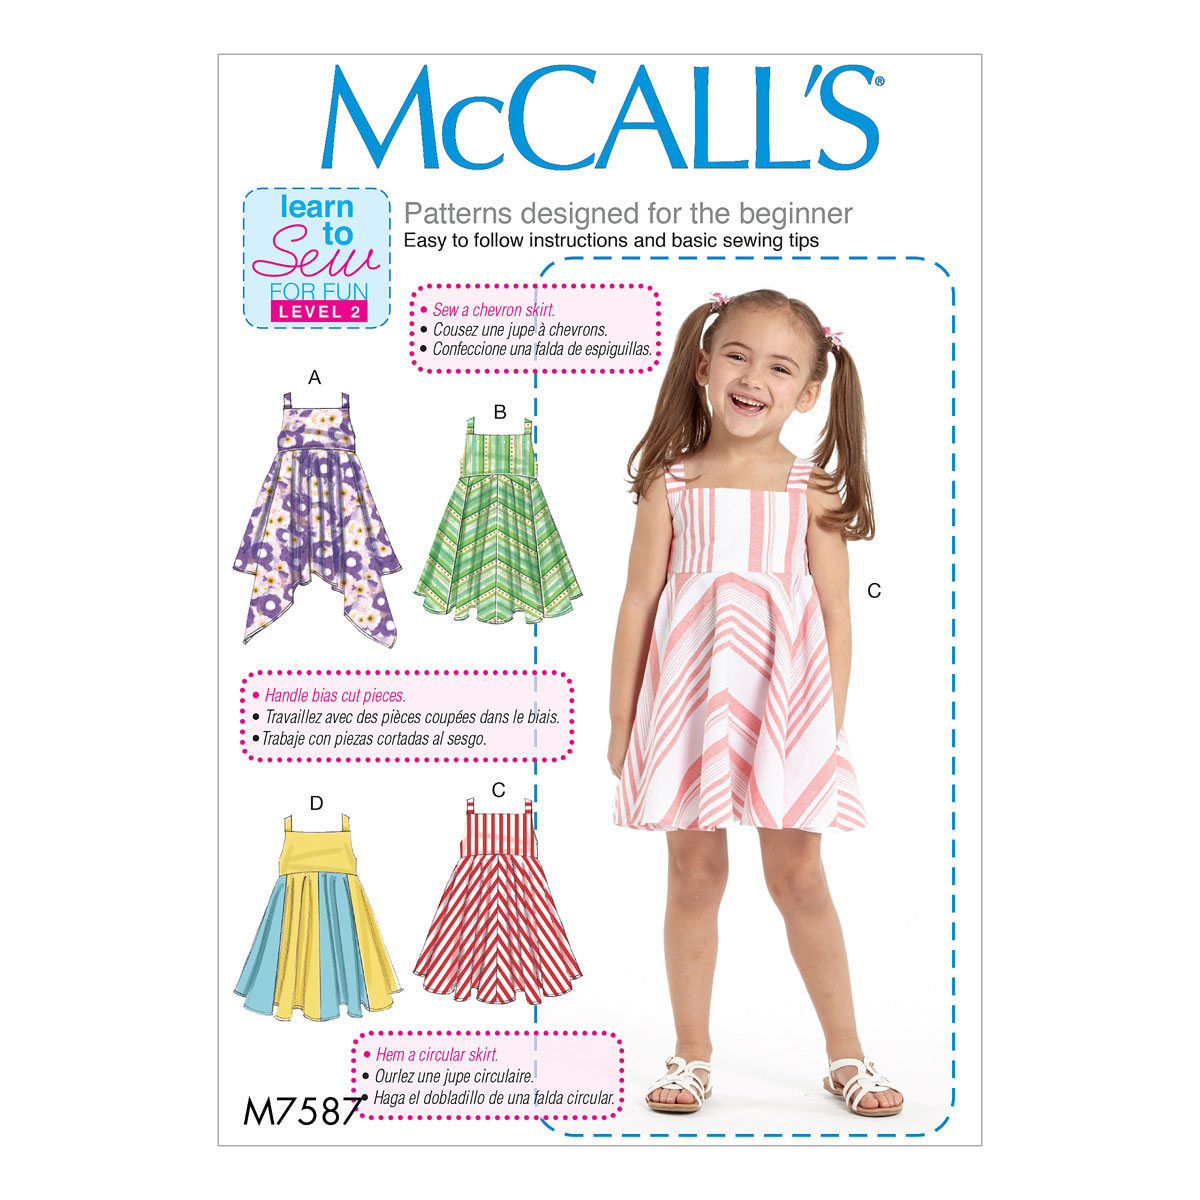 Girls Sewing Patterns Mccalls Sewing Pattern M7587 Childrensgirls Dresses With